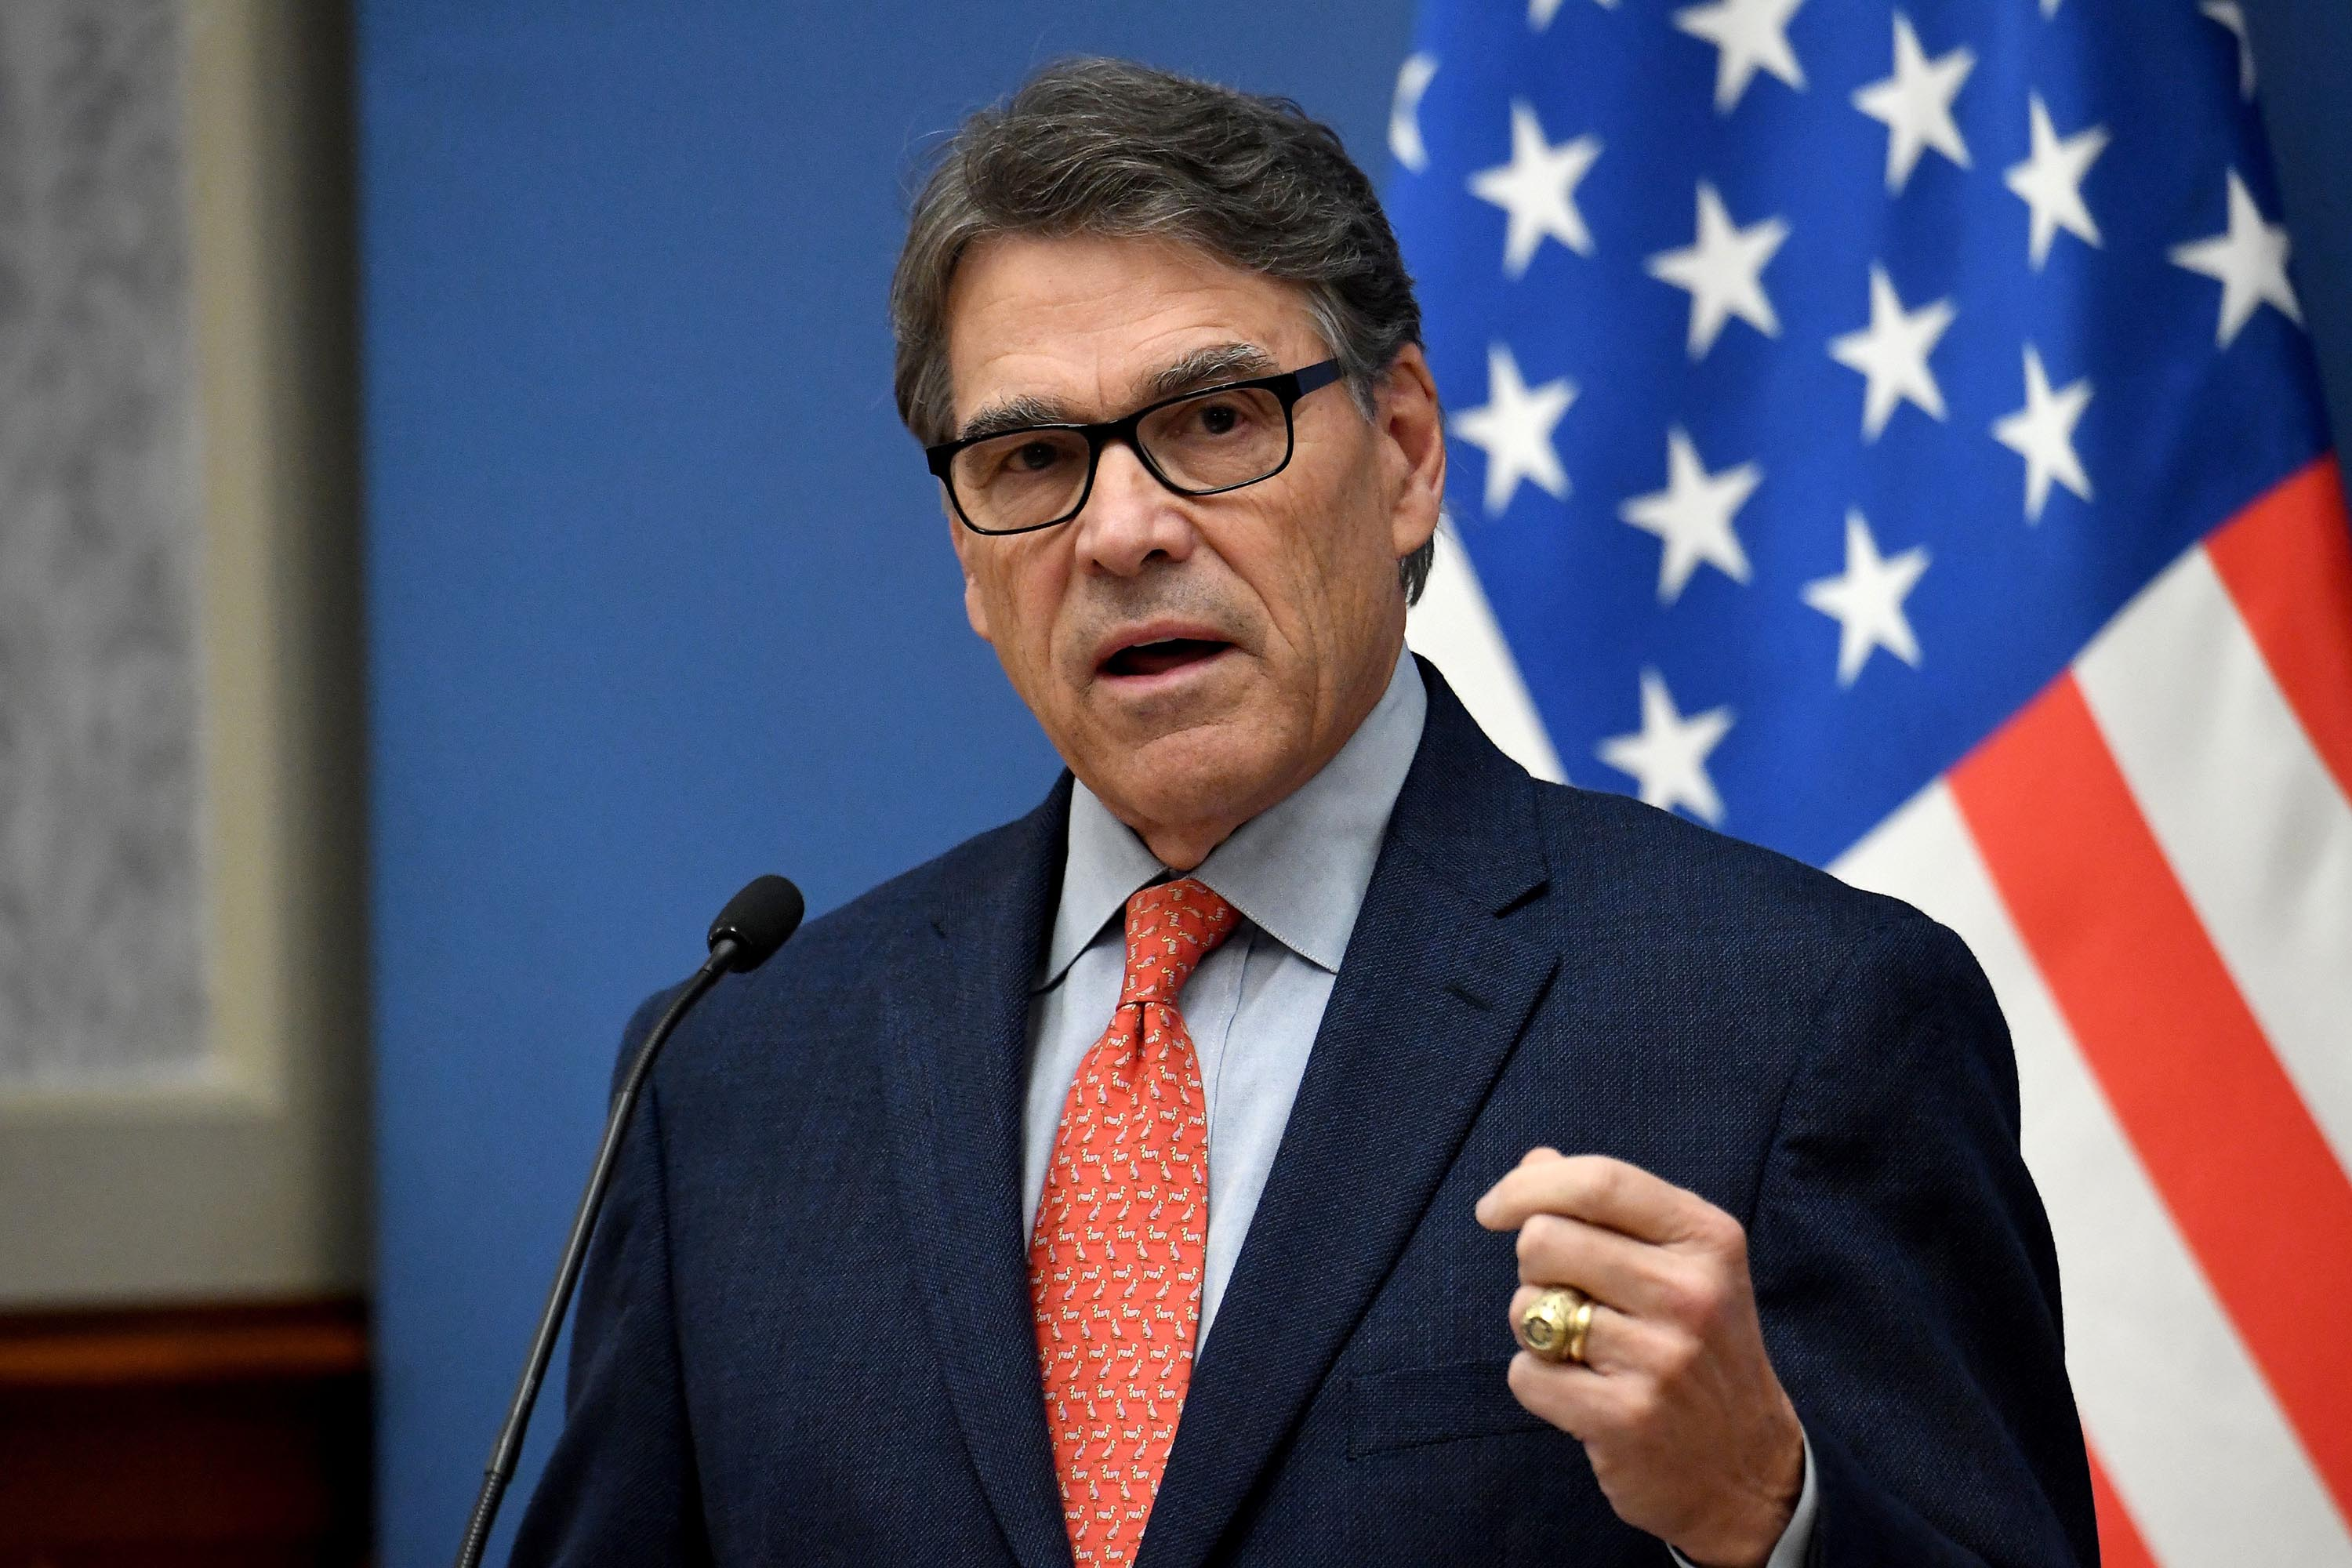 Energy Department releases more than 100 pages of Ukraine documents